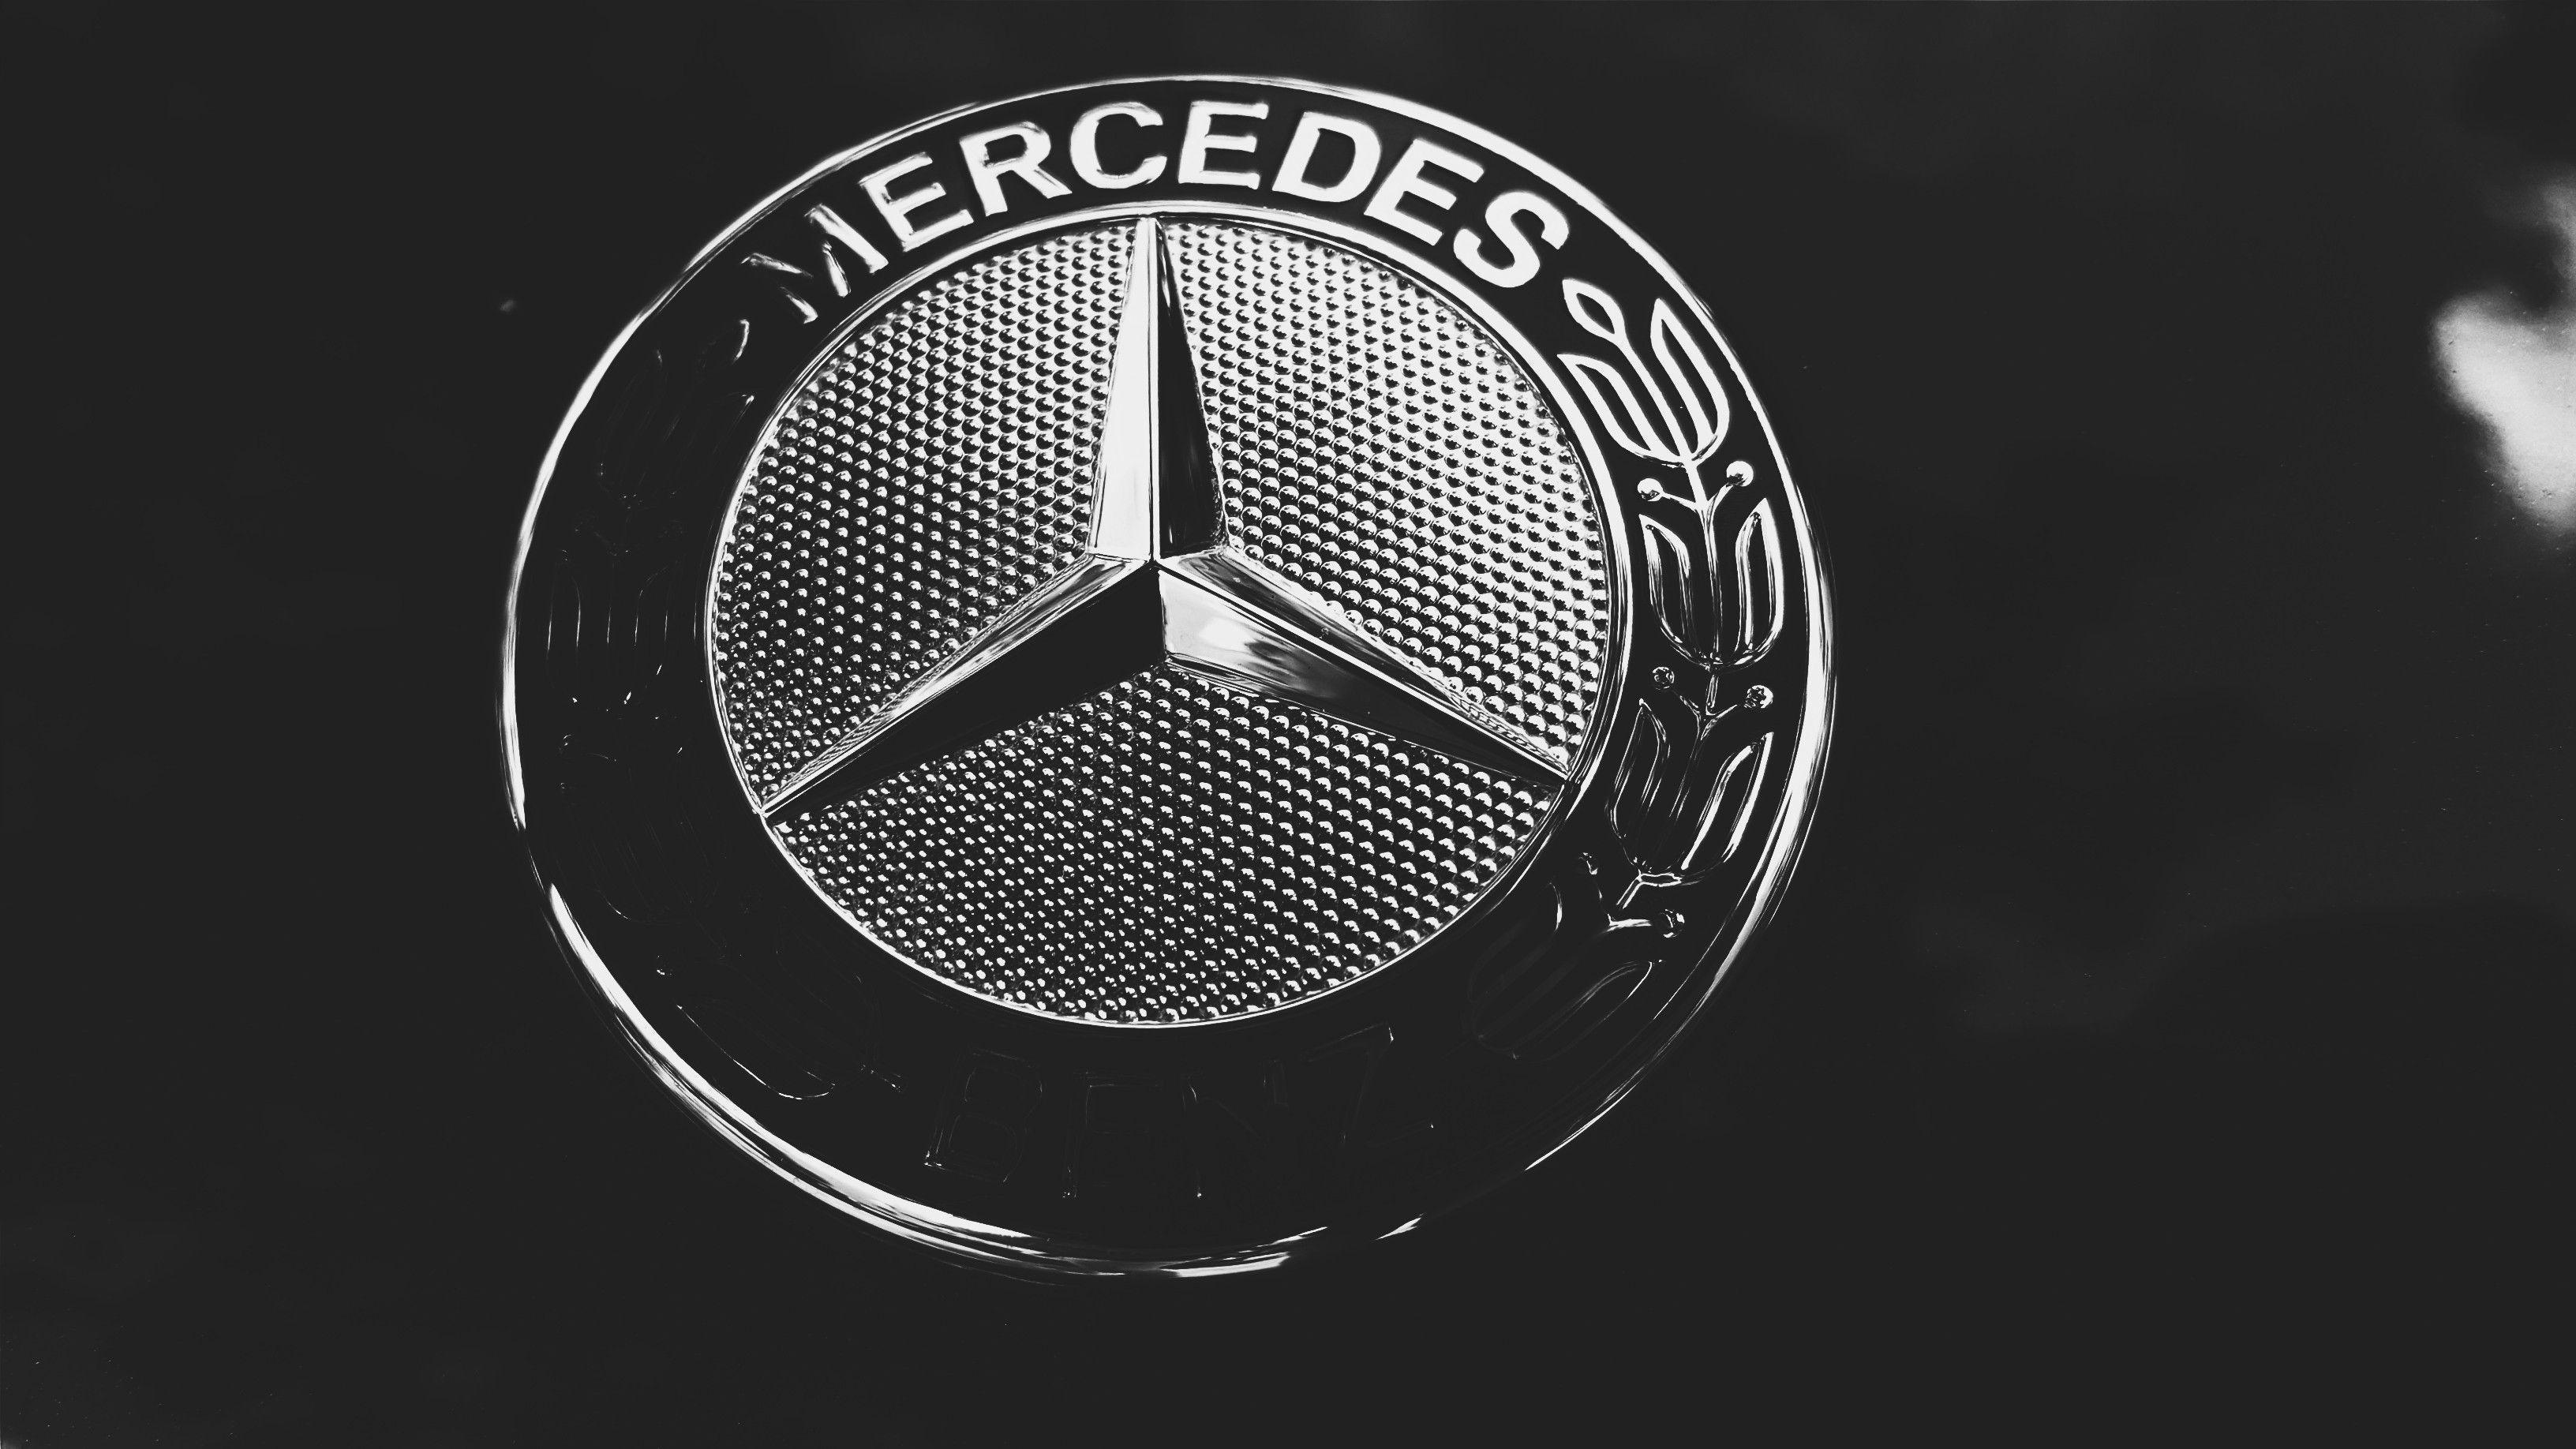 benz logo wallpapers wallpaper - photo #16